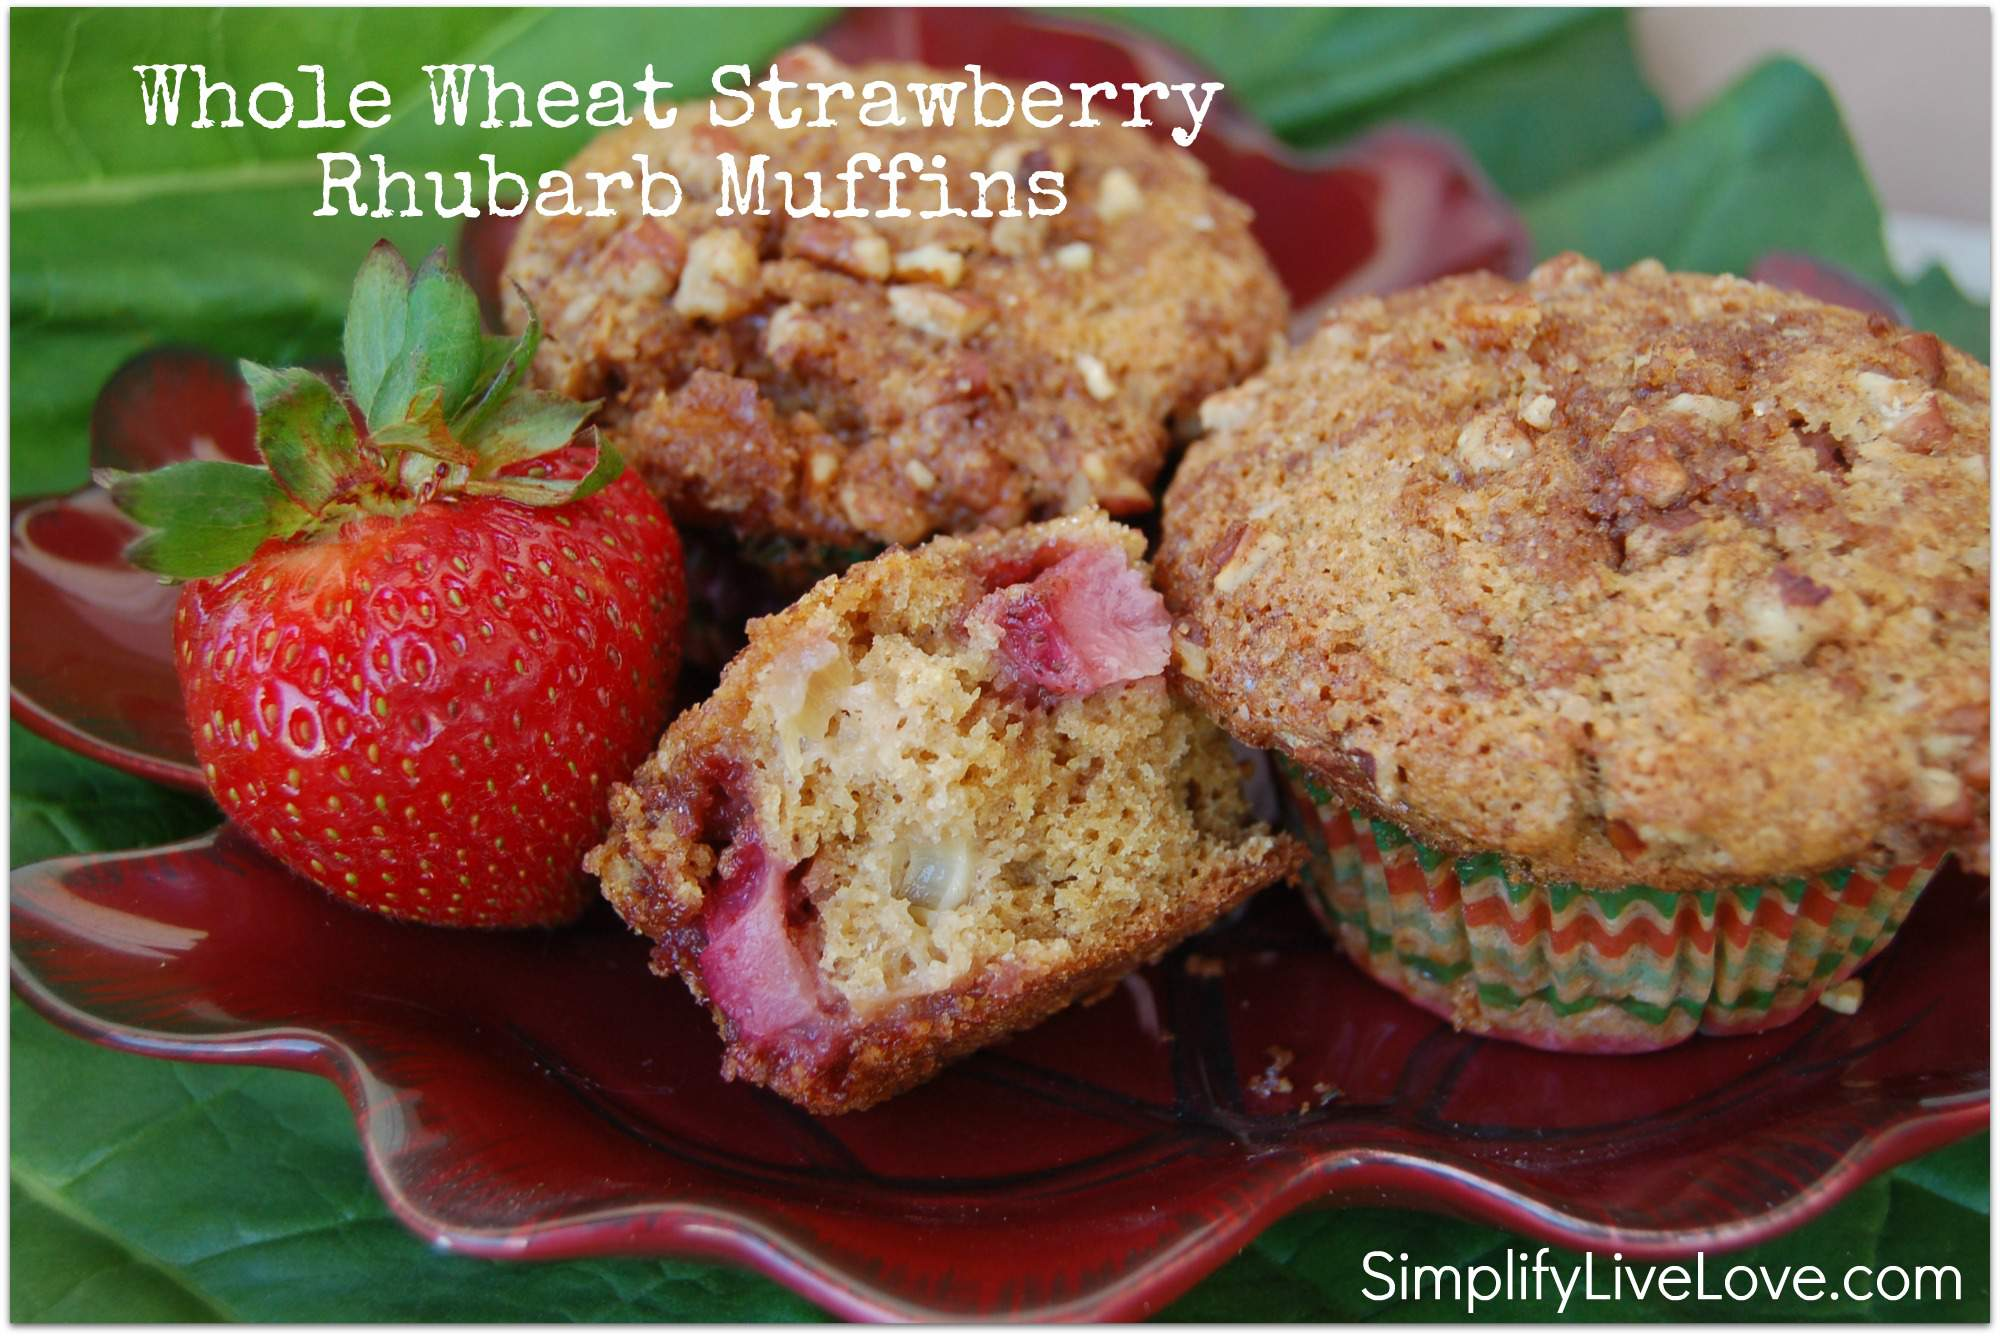 Whole Wheat Strawberry Rhubarb Muffins - Simplify, Live, Love